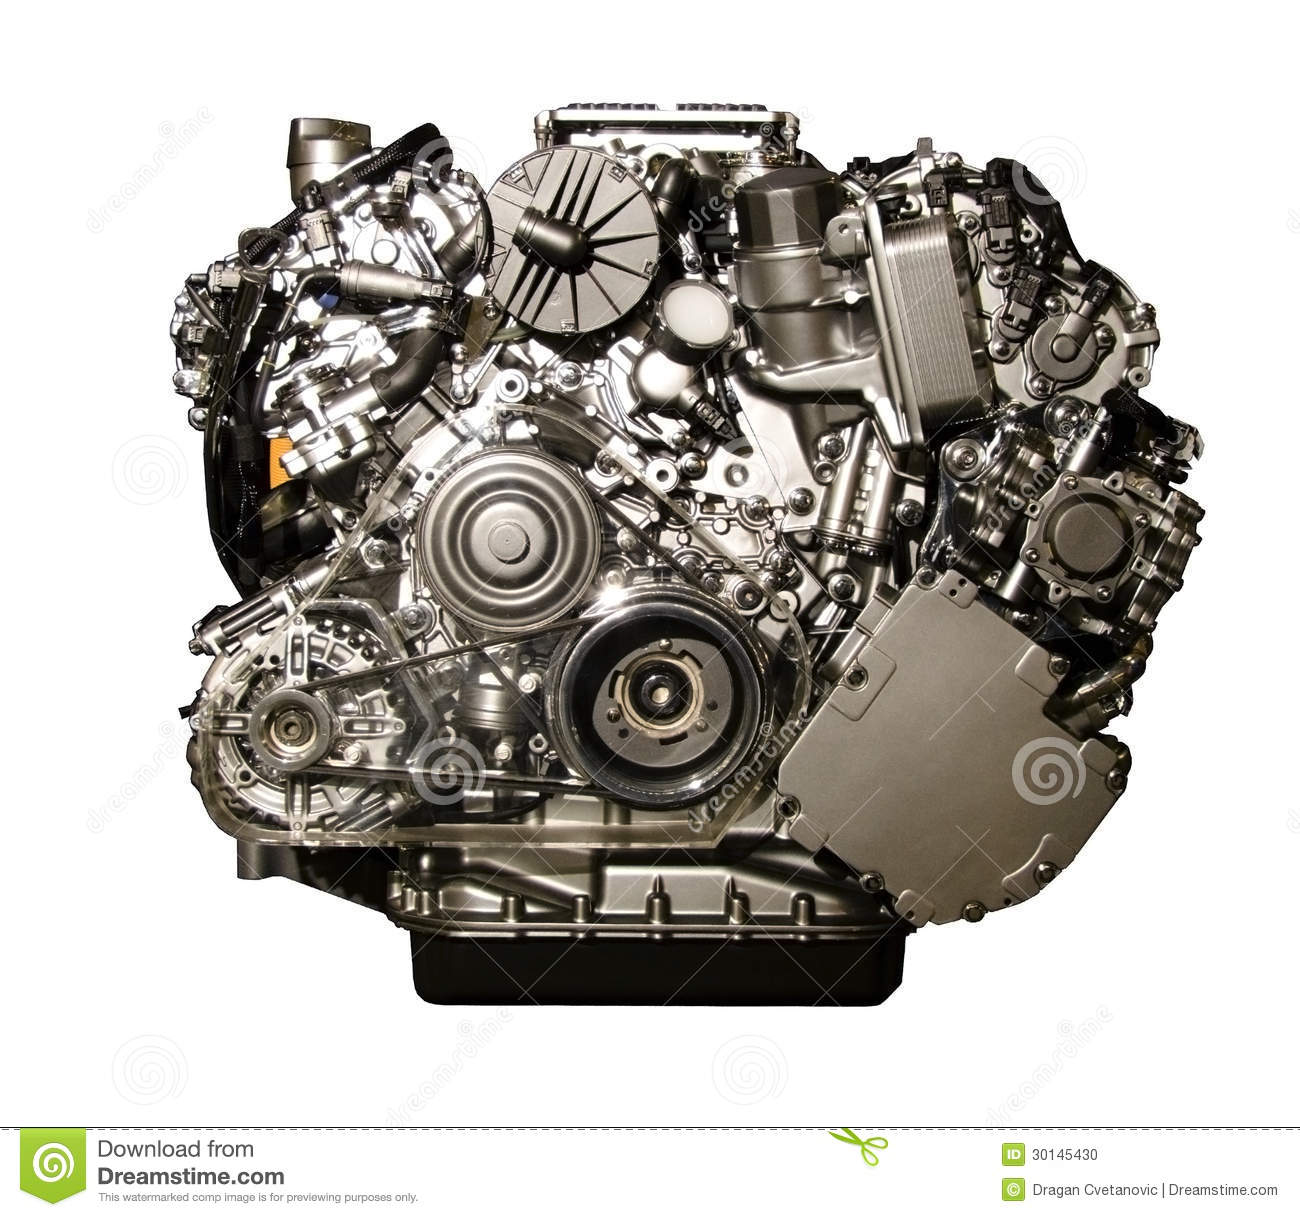 hybrid car engine from mercedes stock photo image 30145430. Black Bedroom Furniture Sets. Home Design Ideas